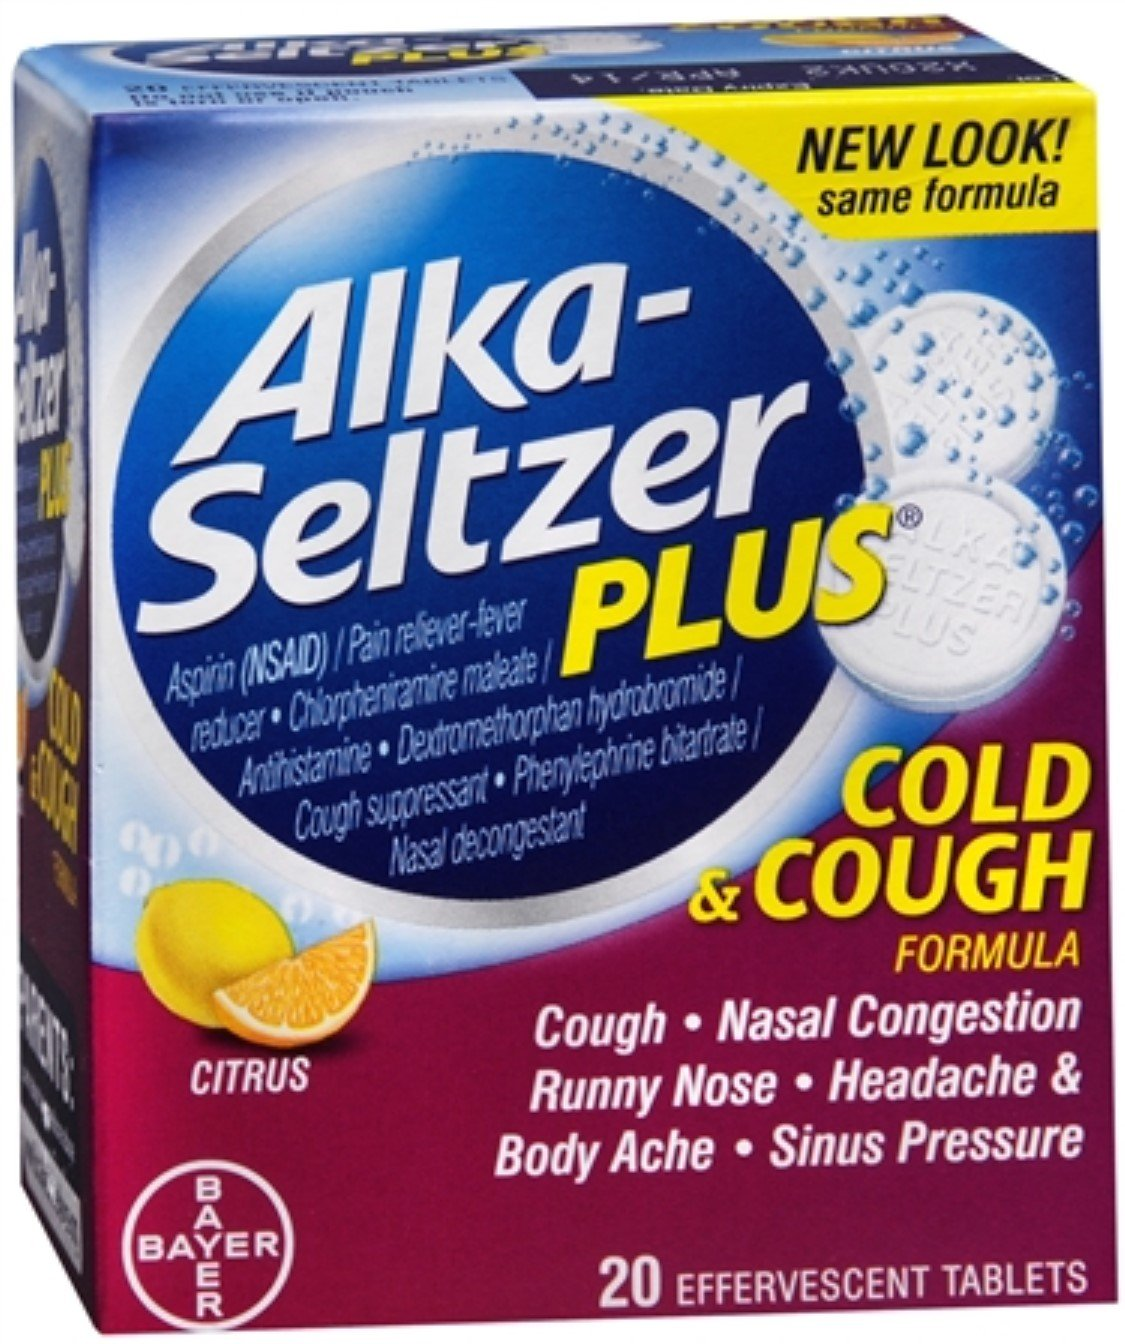 Alka-Seltzer Plus Cold & Cough Formula Effervescent Tablets, Citrus 20 ea (Pack of 9) by Alka-Seltzer